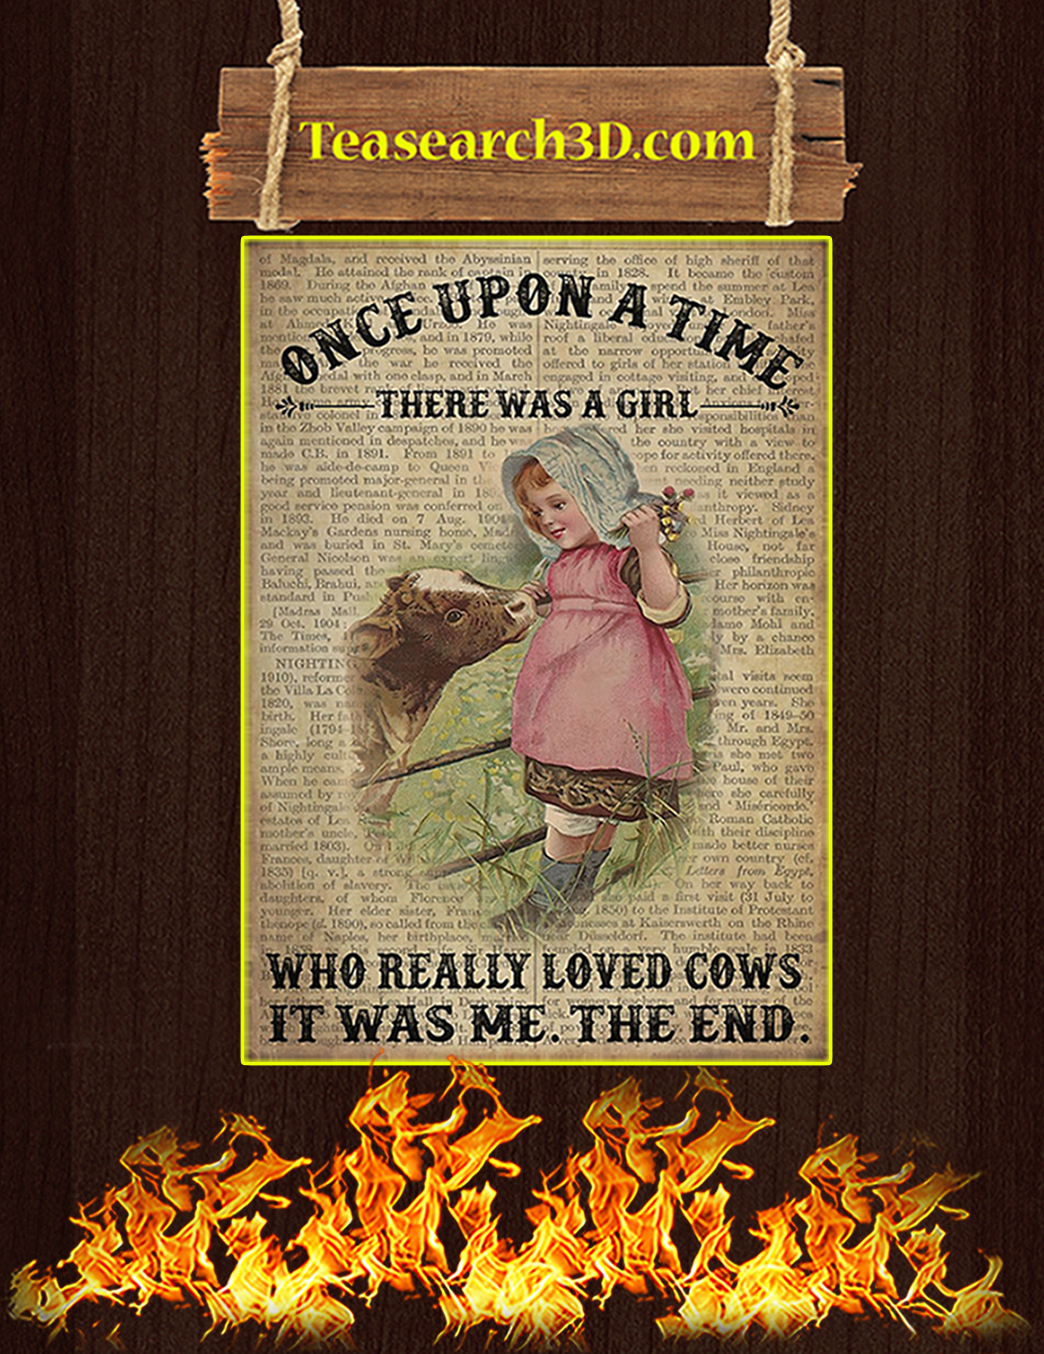 Once upon a time there was a girl who really loved cows poster A1